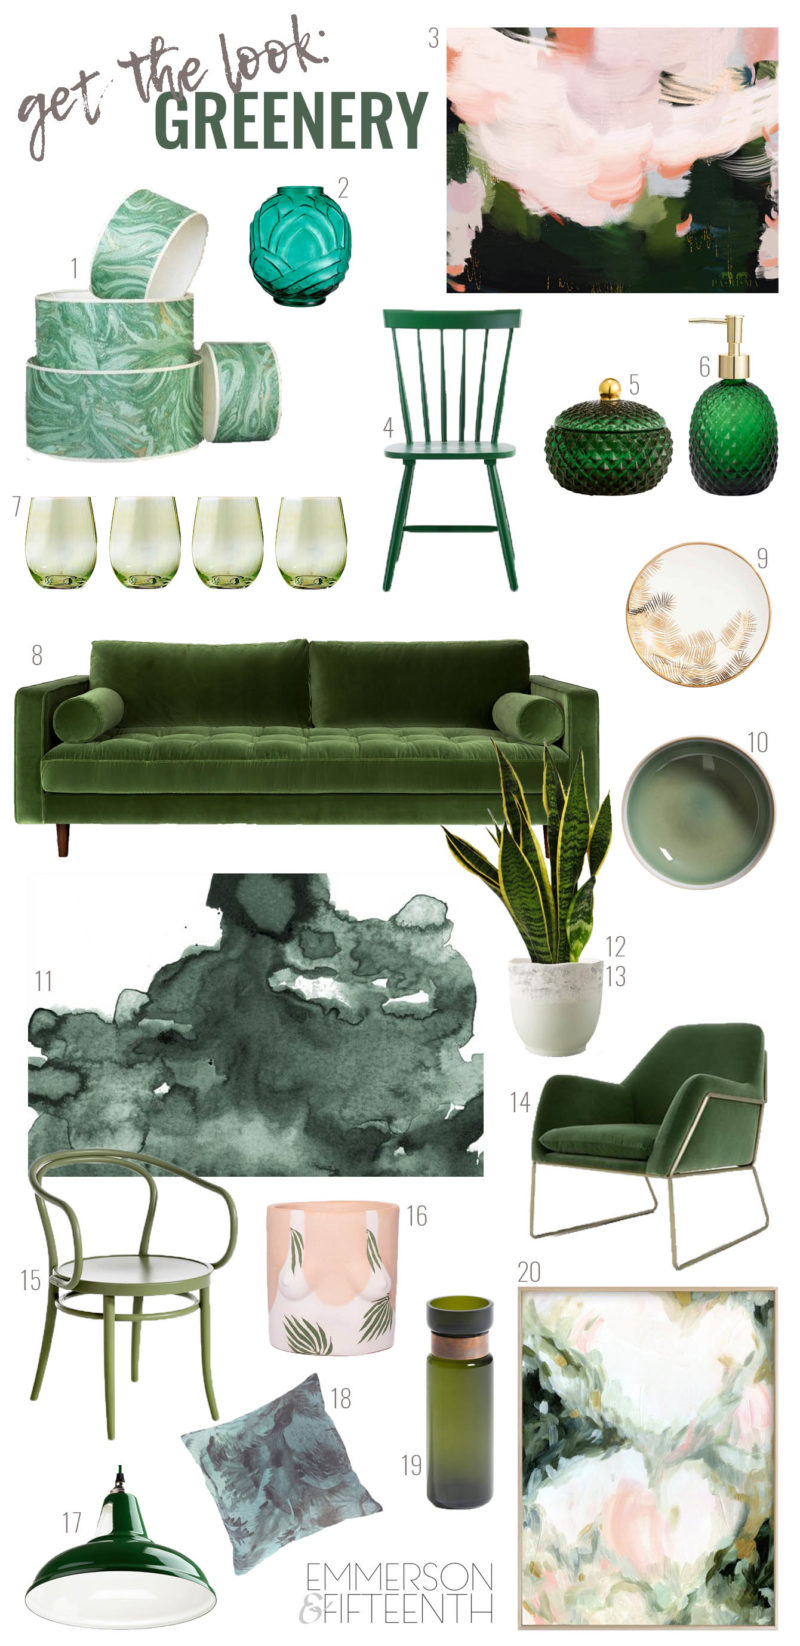 Get the Look - Interior Design Trend Round Up - Greenery aka Botany - Home Decor Product Picks